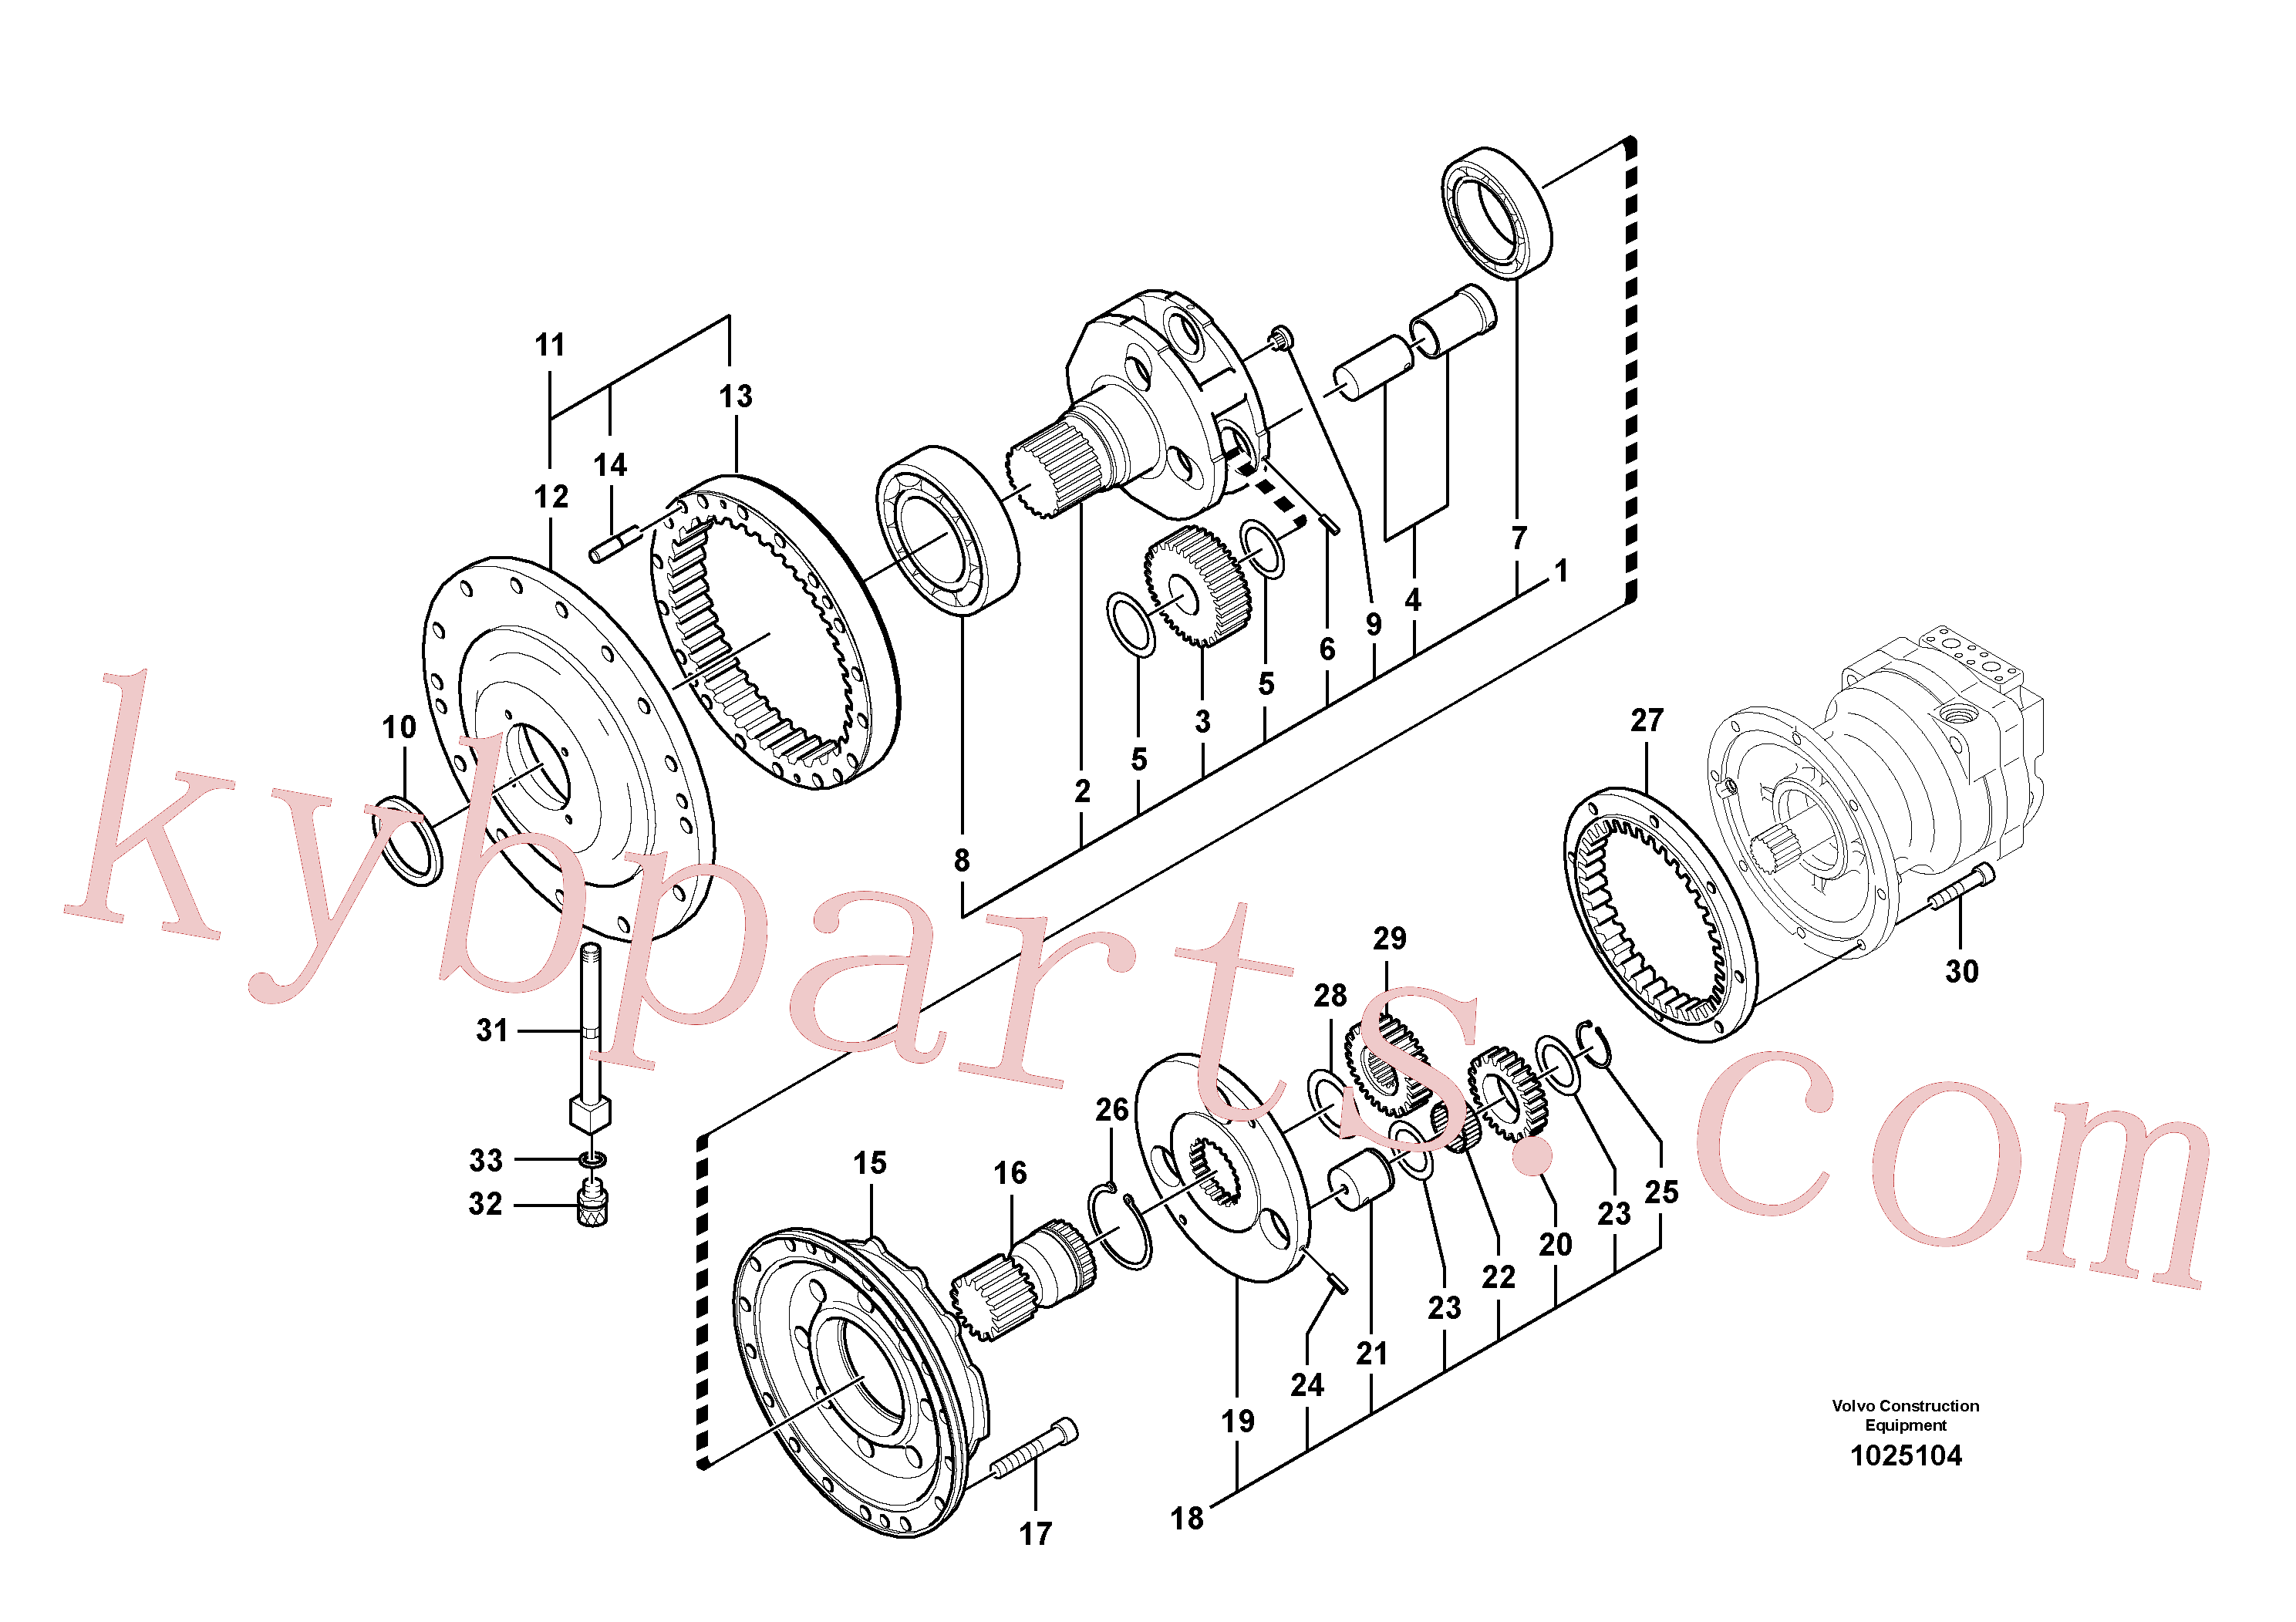 SA7118-38400 for Volvo Swing gearbox(1025104 assembly)